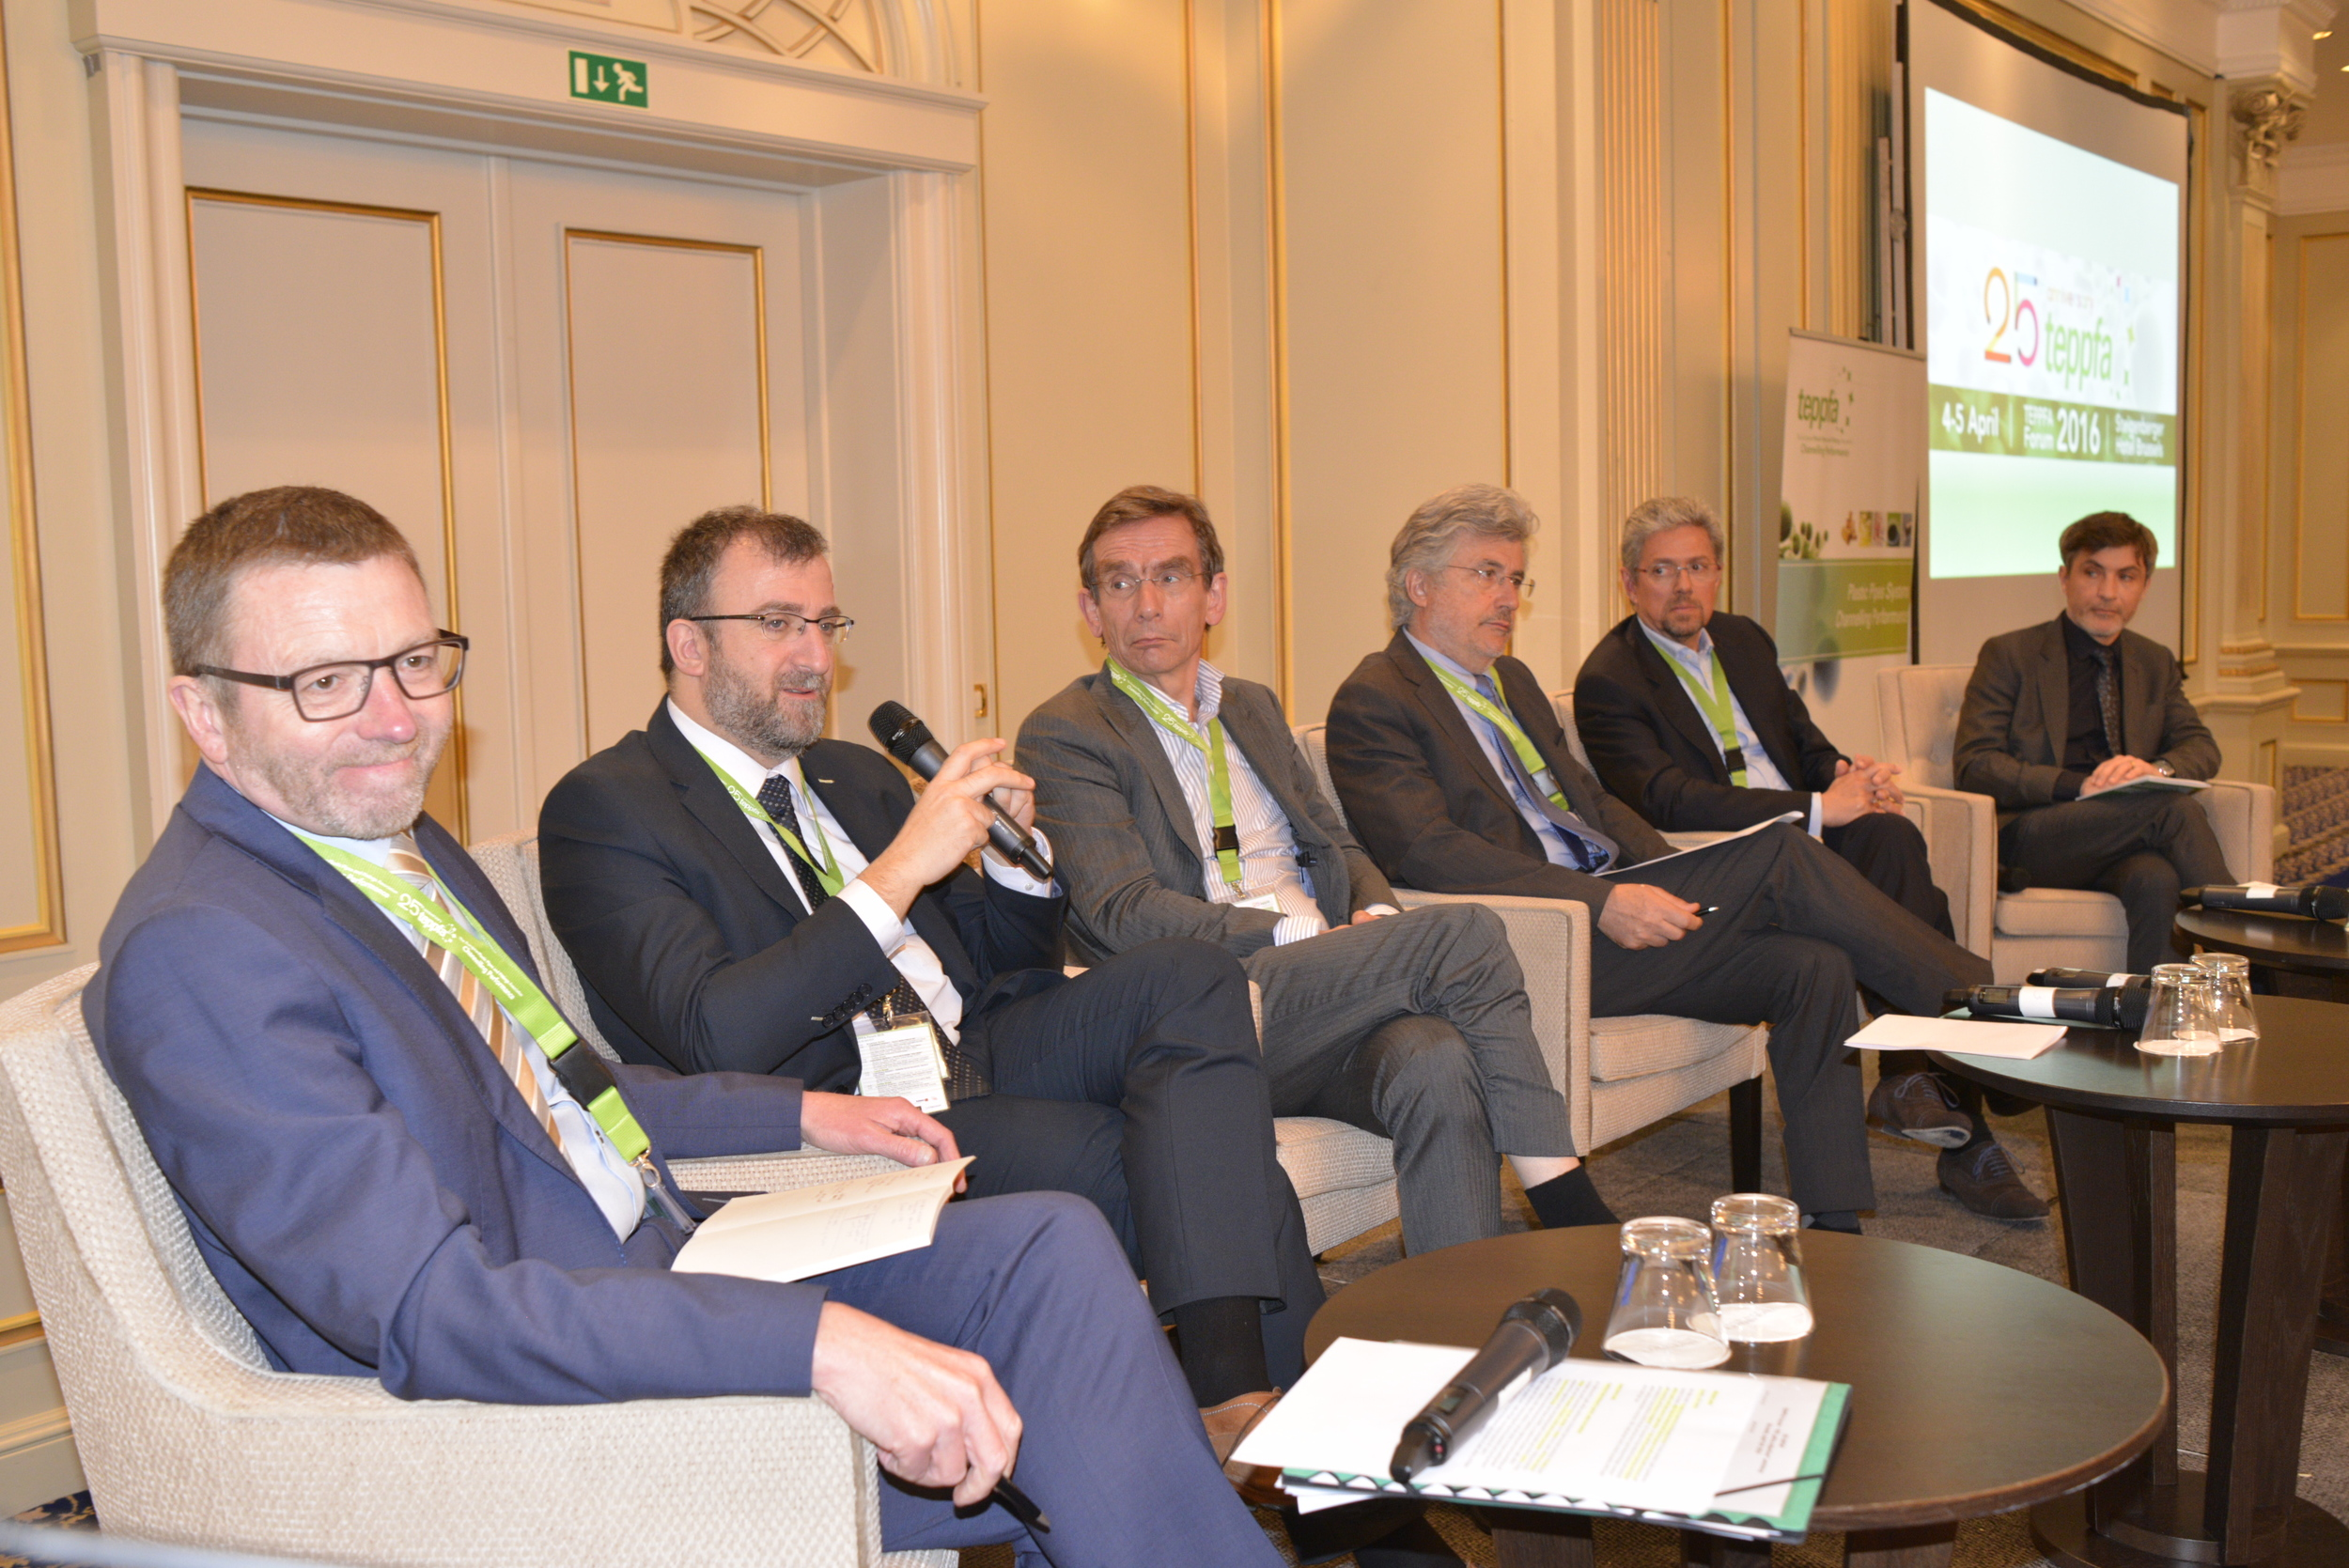 Conference session on Policy objectives of PEF at the TEPPFA Forum 2016. From left to right: Gwenole Cozigou, DG GROW, European Commission (moderator), Michele Galatola, DG ENV, European Commission, Mark Goedkoop, PRé, Paolo Masoni, ENEA, Frédéric Midy, EMEA, Aliaxis, Christophe Sykes, Construction Products Europe.